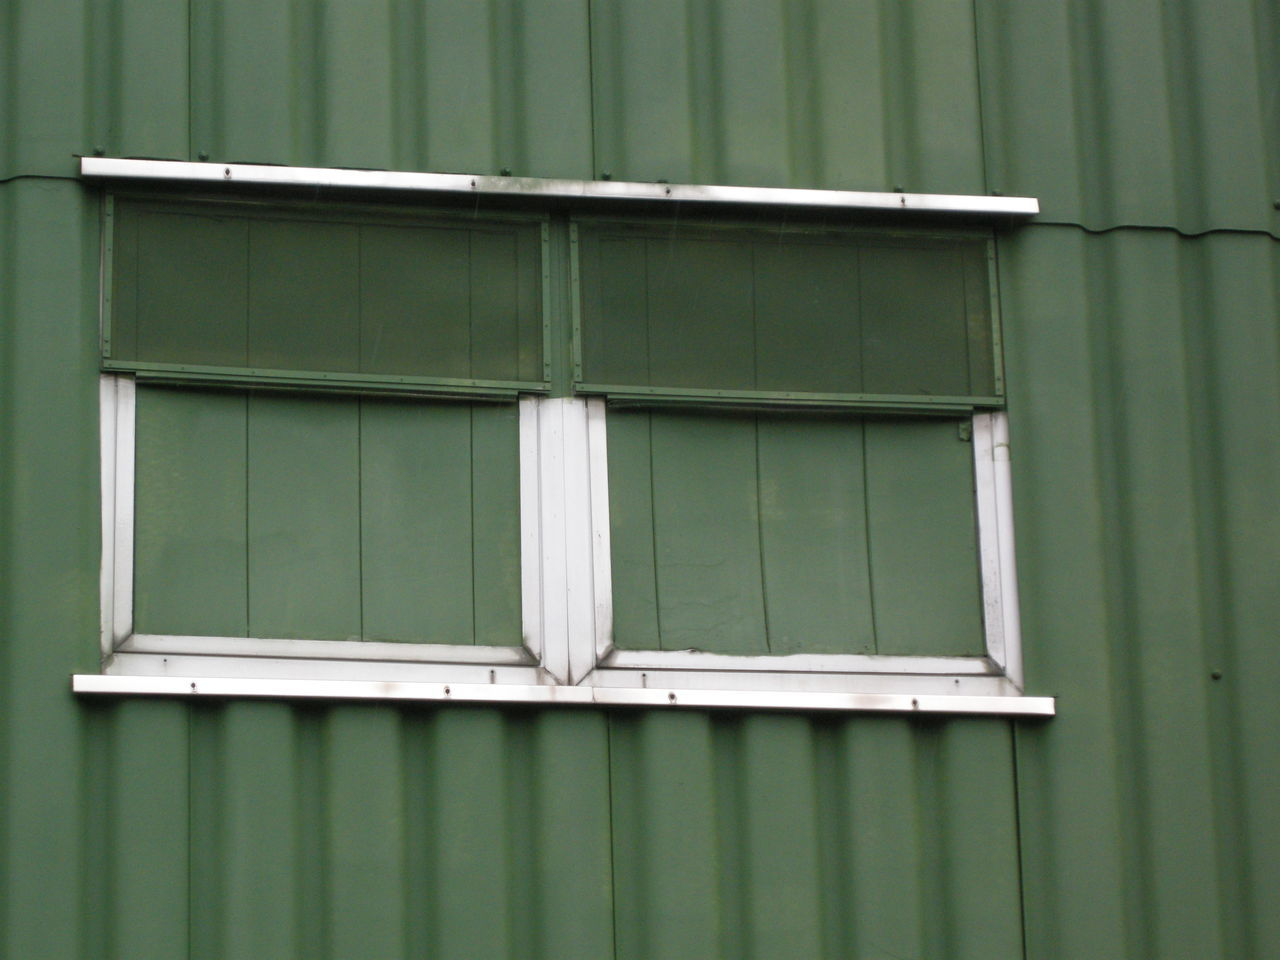 window, architecture, built structure, building exterior, day, outdoors, no people, close-up